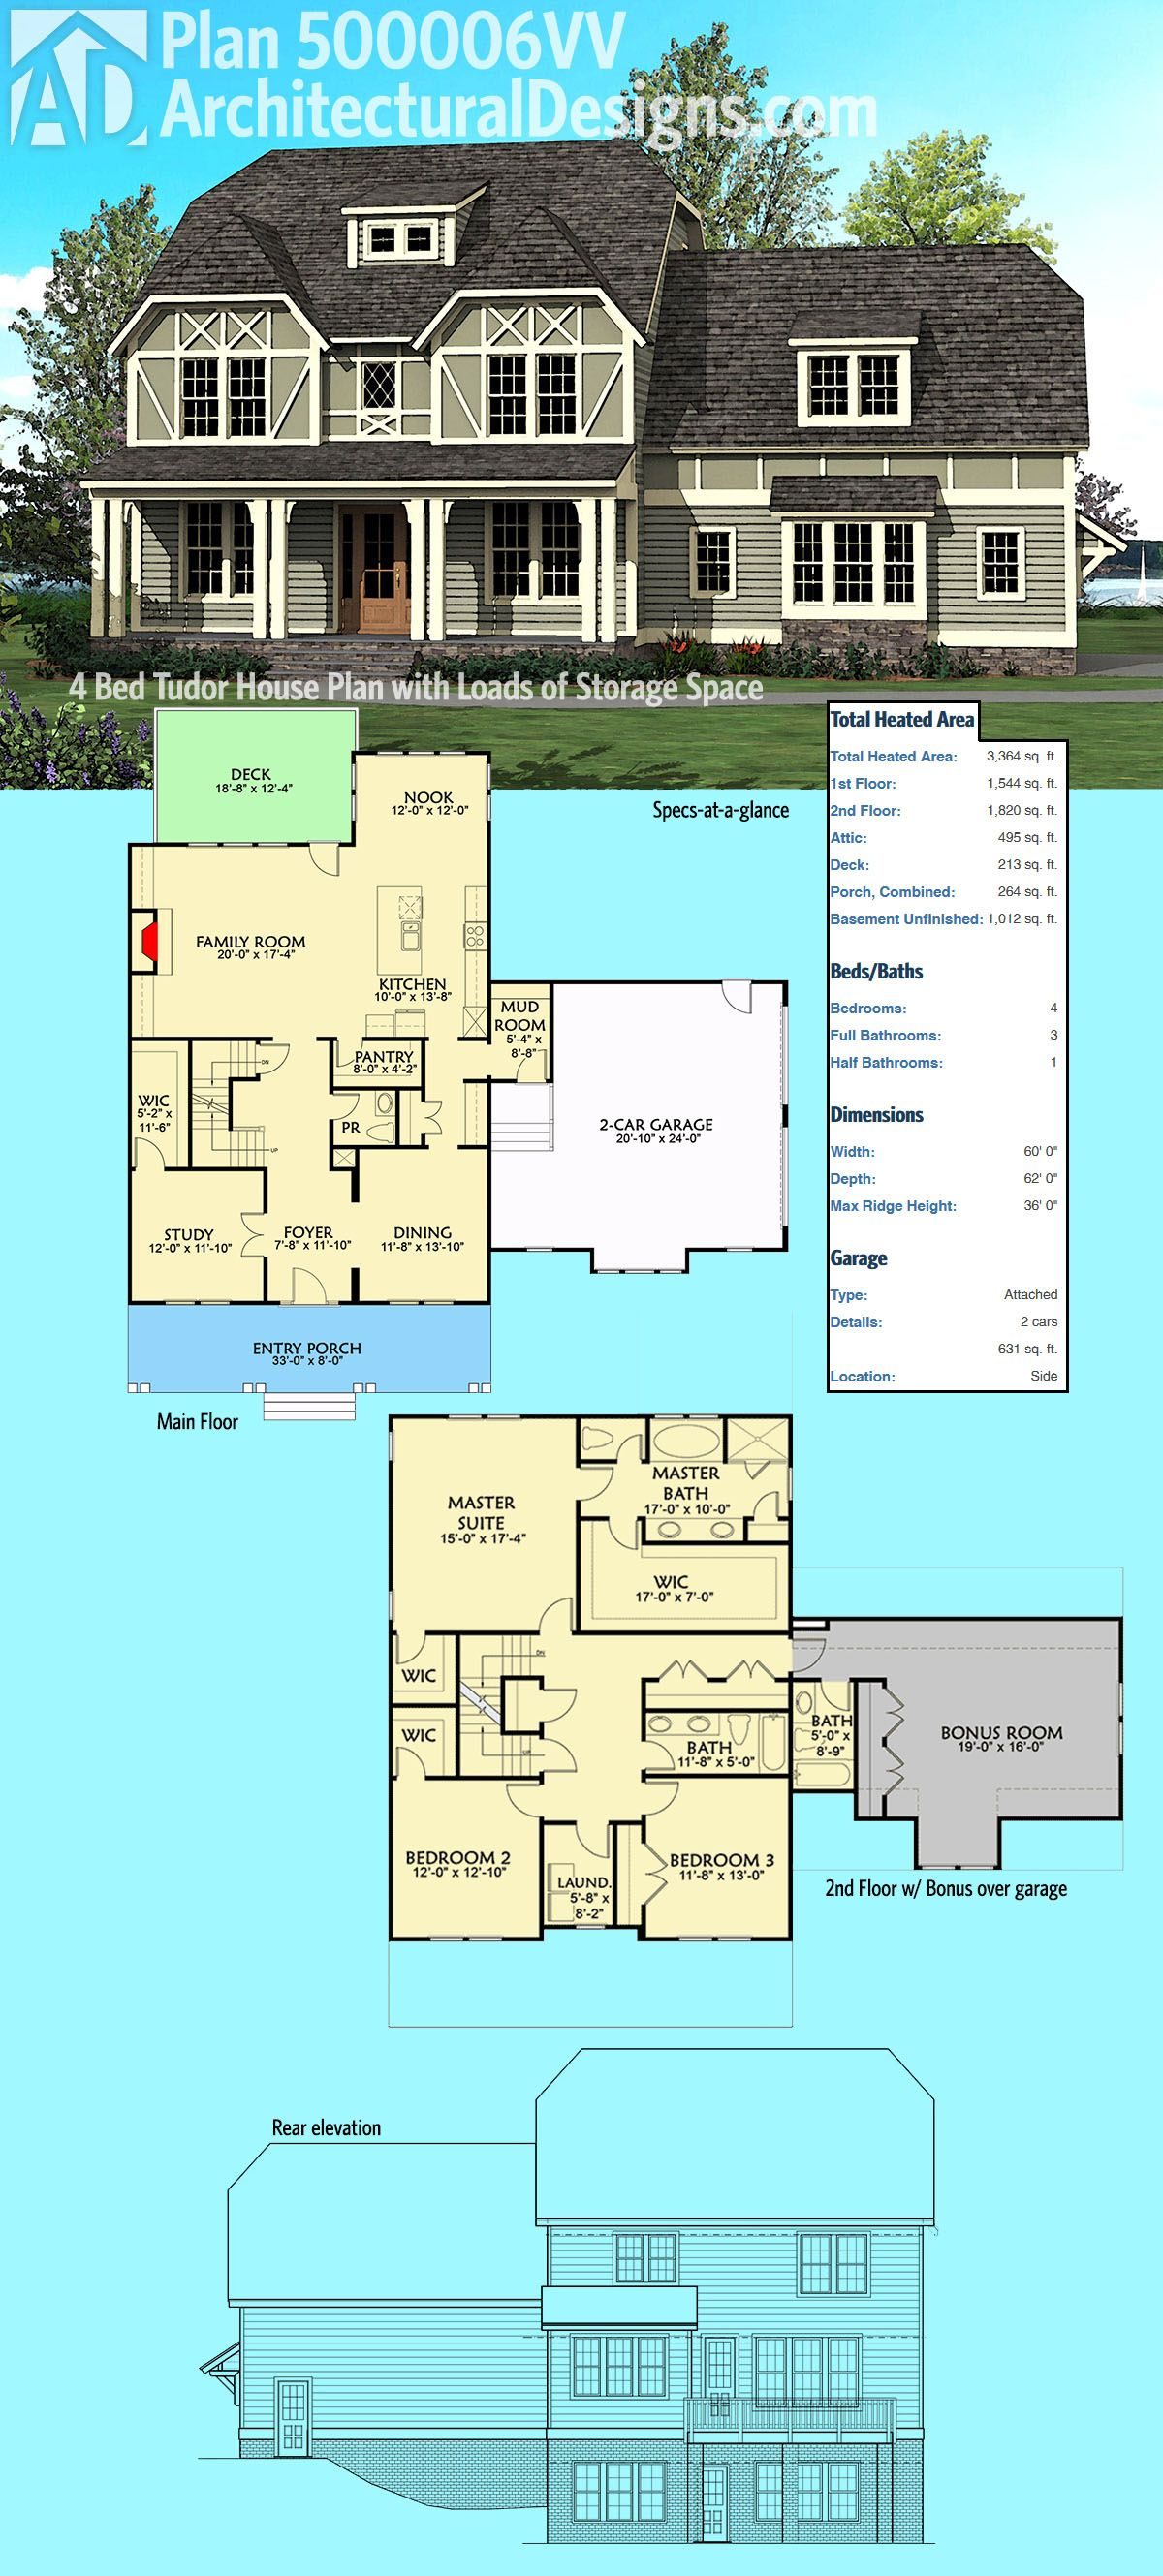 Architectural Designs Craftsman House Plan 500006VV has